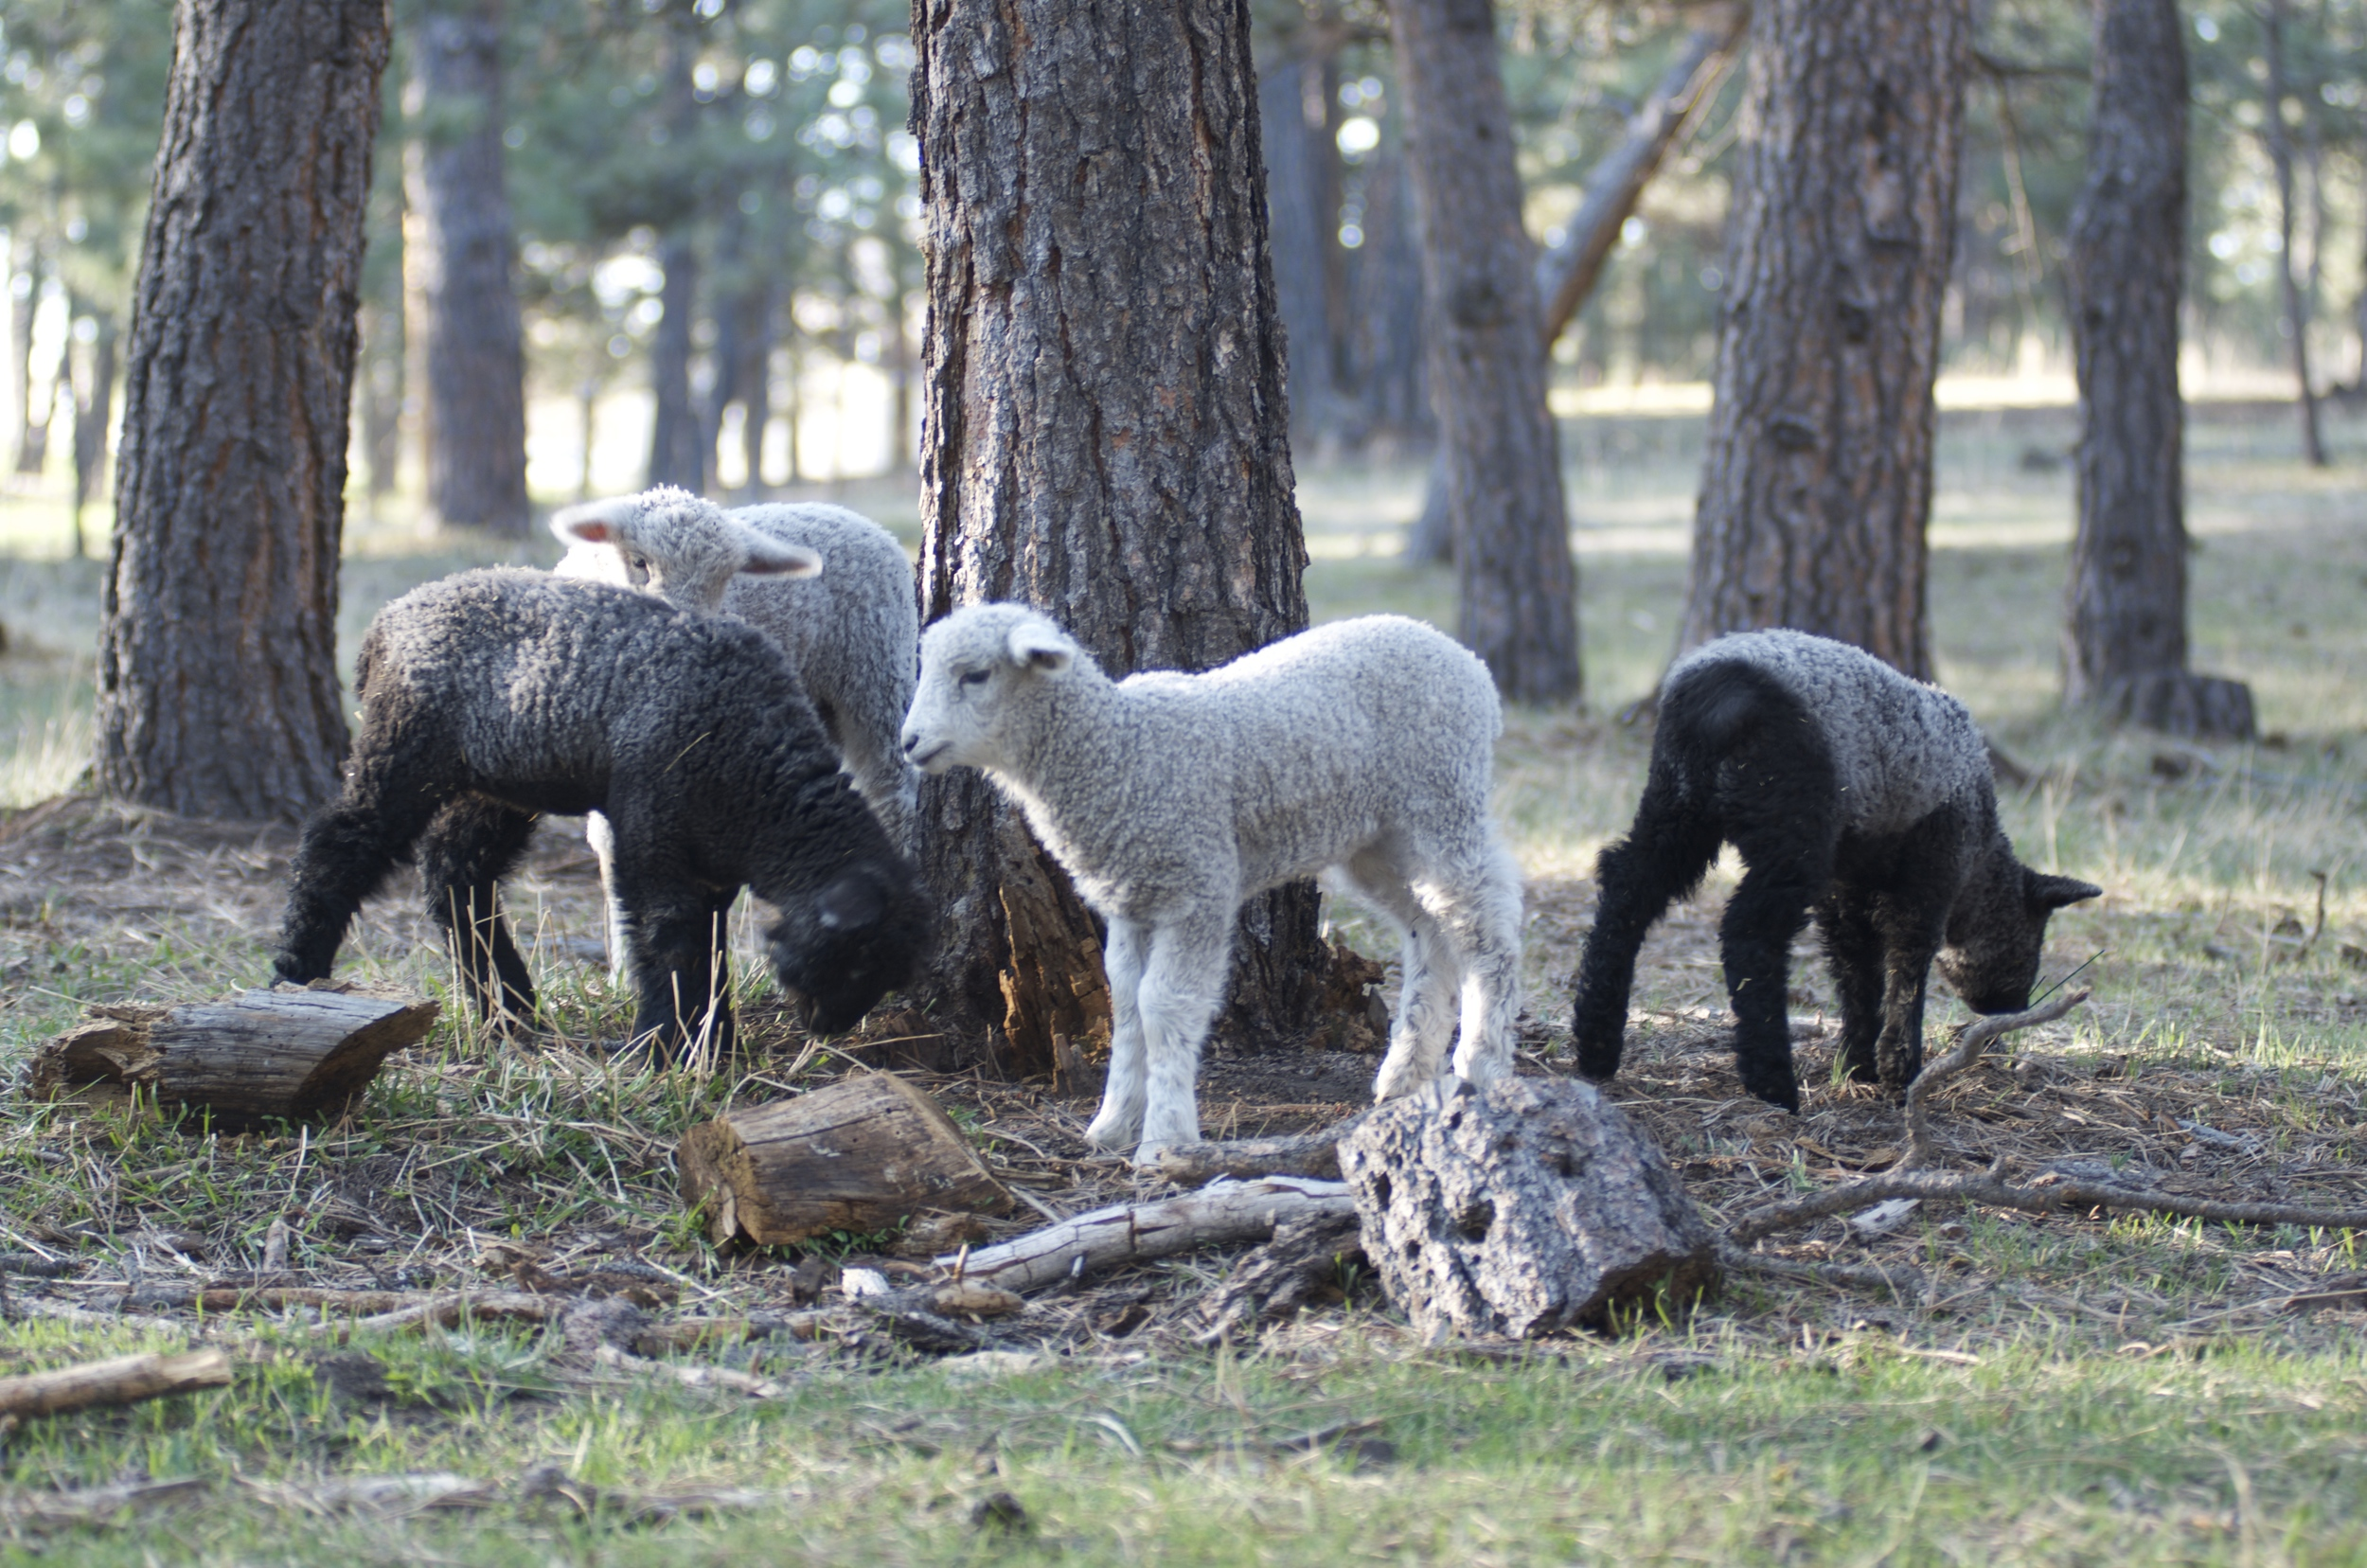 The lambs exploring their world